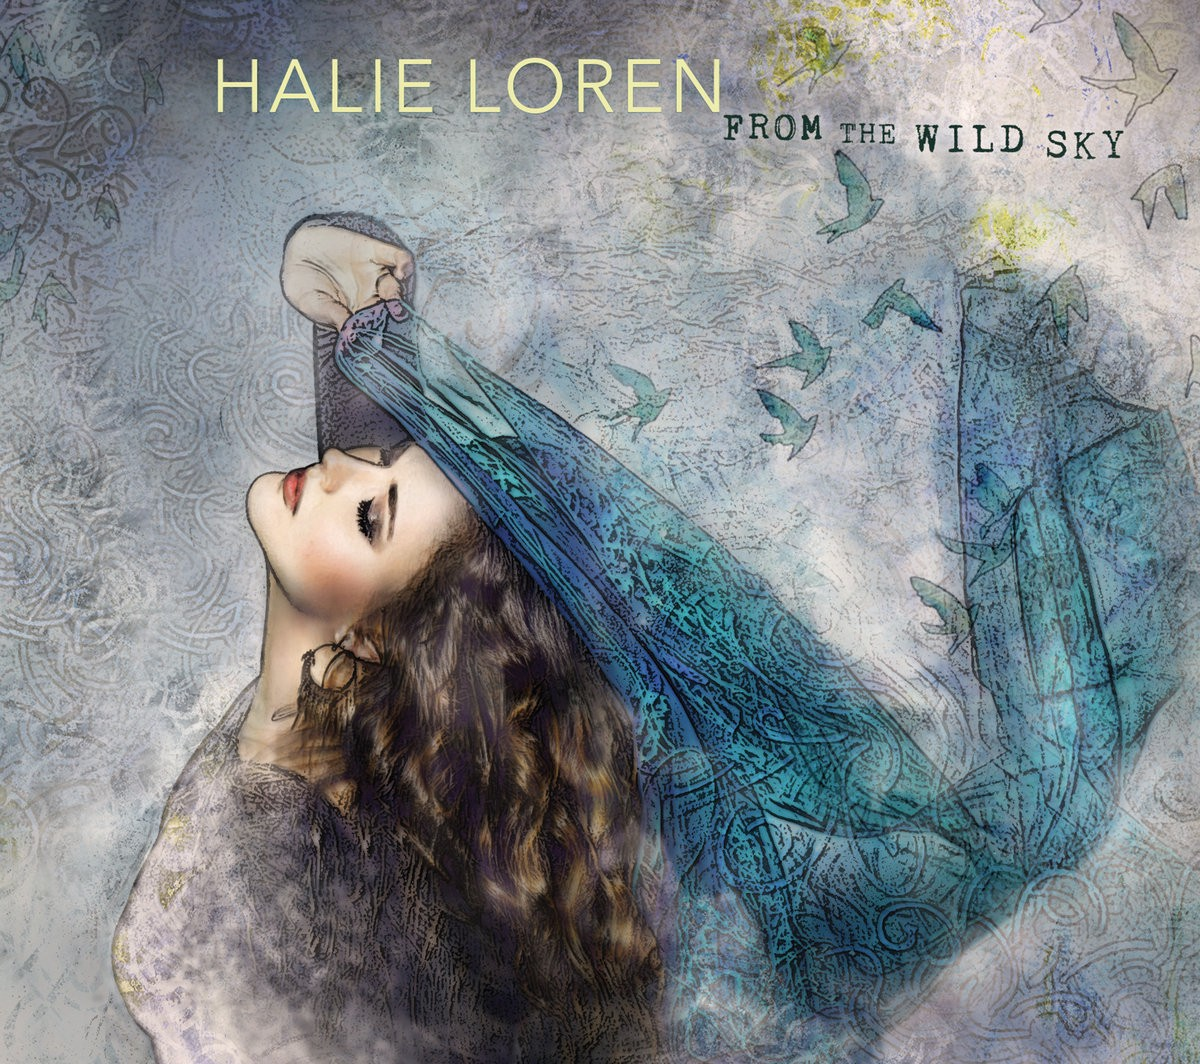 Halie Loren's 'From The Wild Sky': hers, yours and mine